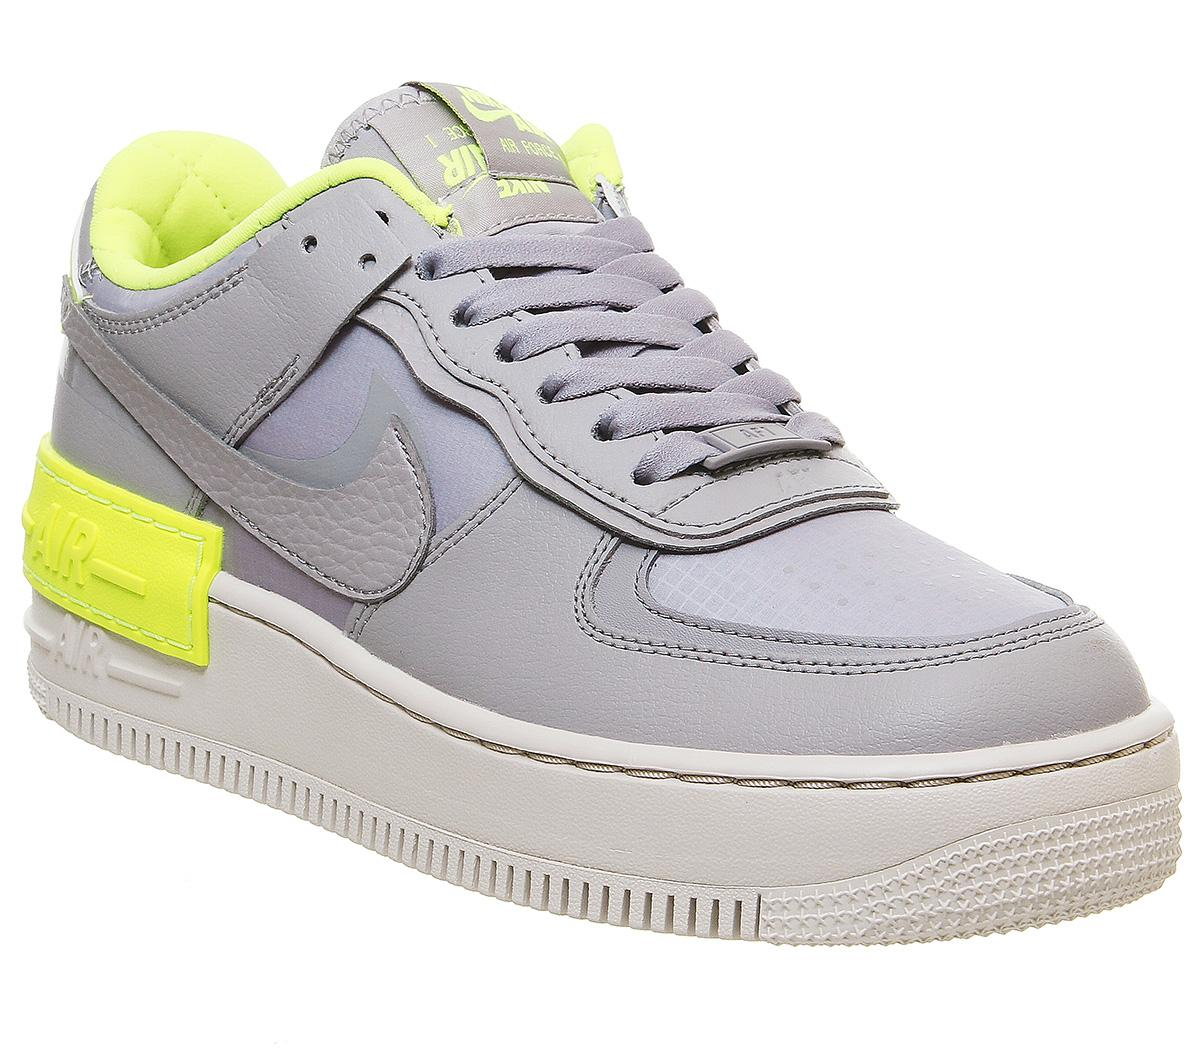 Nike Air Force 1 Shadow Trainers Atmosphere Grey Light Orewood Brown Volt Hers Trainers The low sneaker was realised in '83 (a year after the high top) and caught the attention of the sneakerhead community; offspring